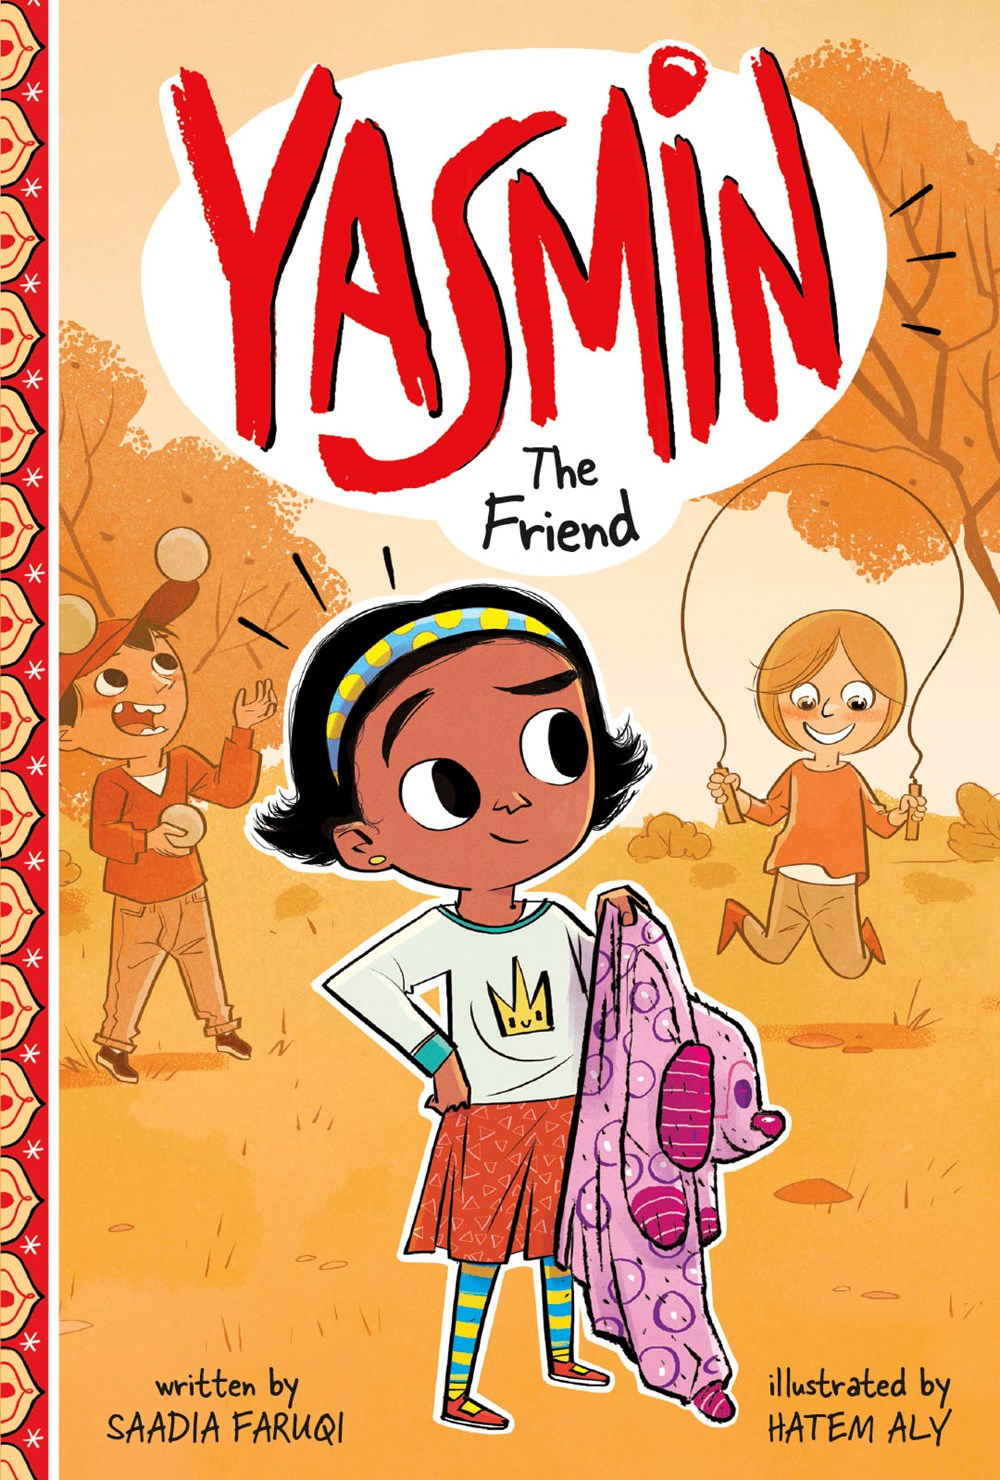 Saadia Faruqi author Yasmin The Friend